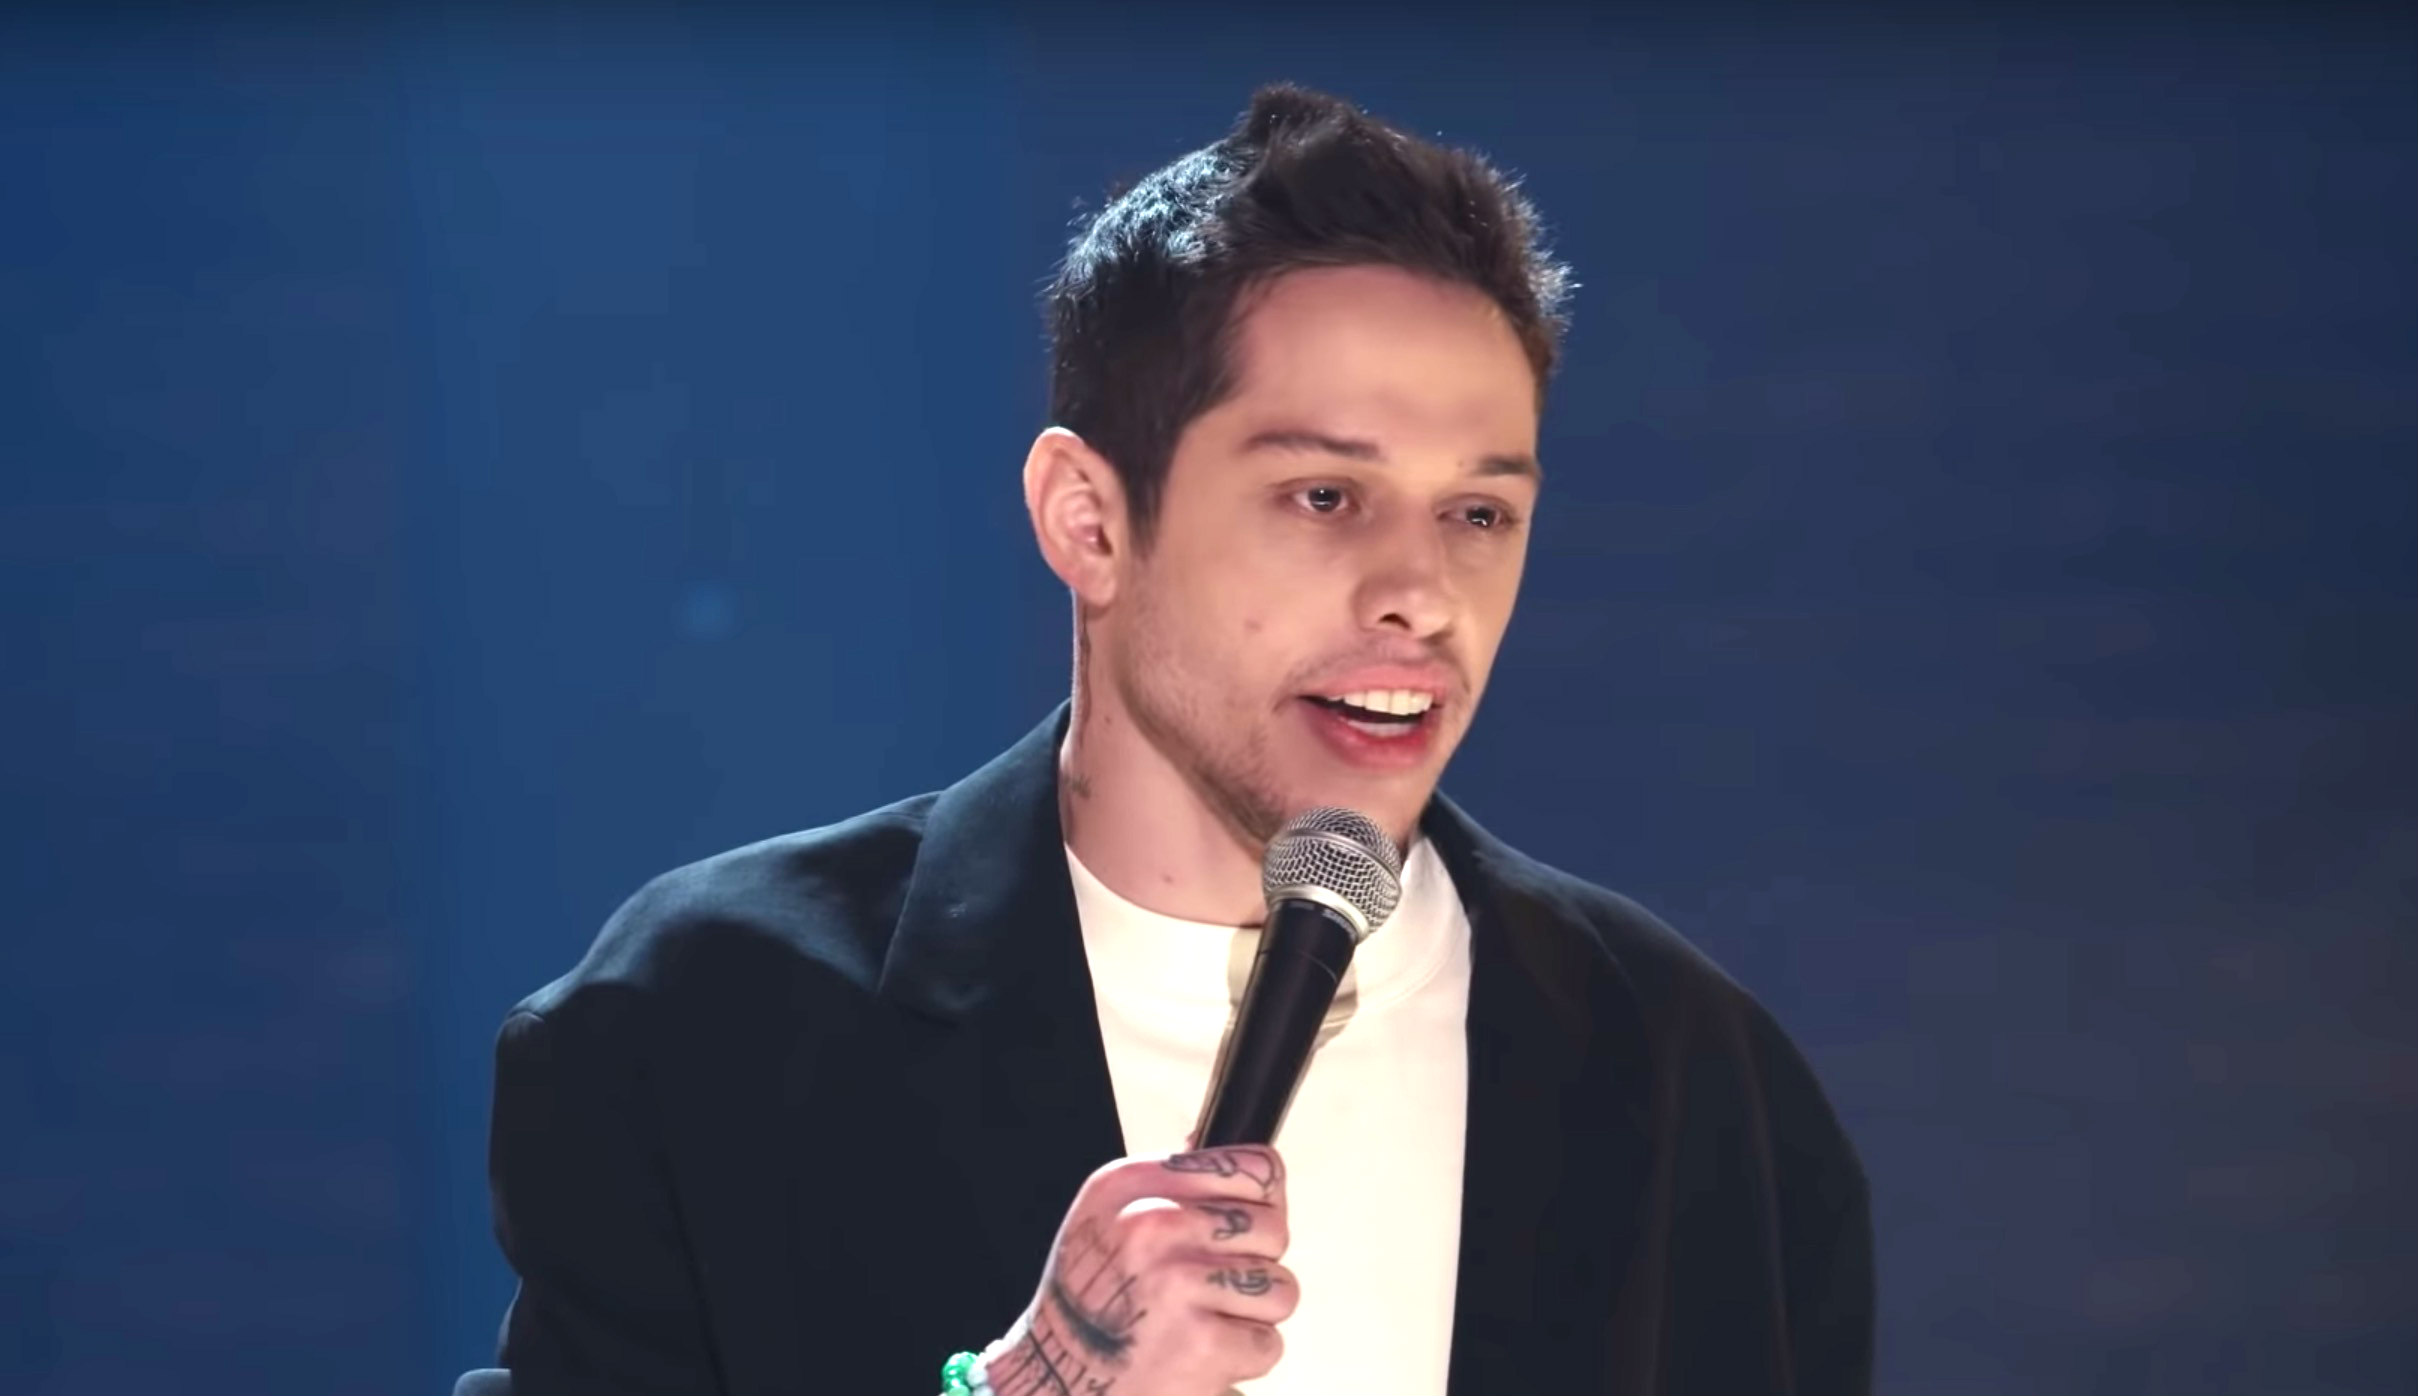 Pete Davidson Is Alive From New York In The Trailer For His First Netflix Special